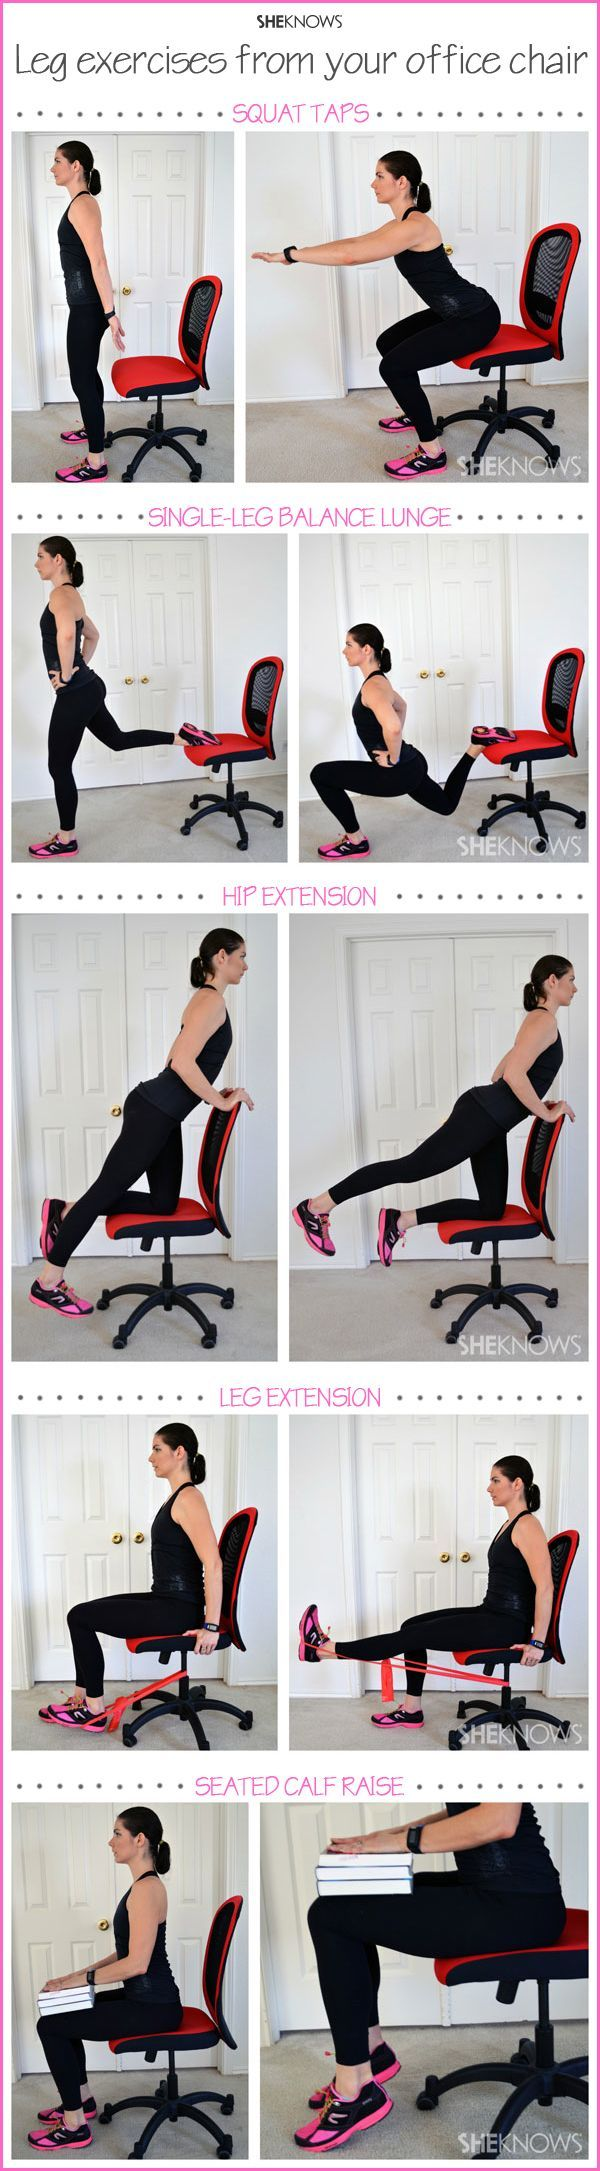 Work out your legs while sitting at your desk